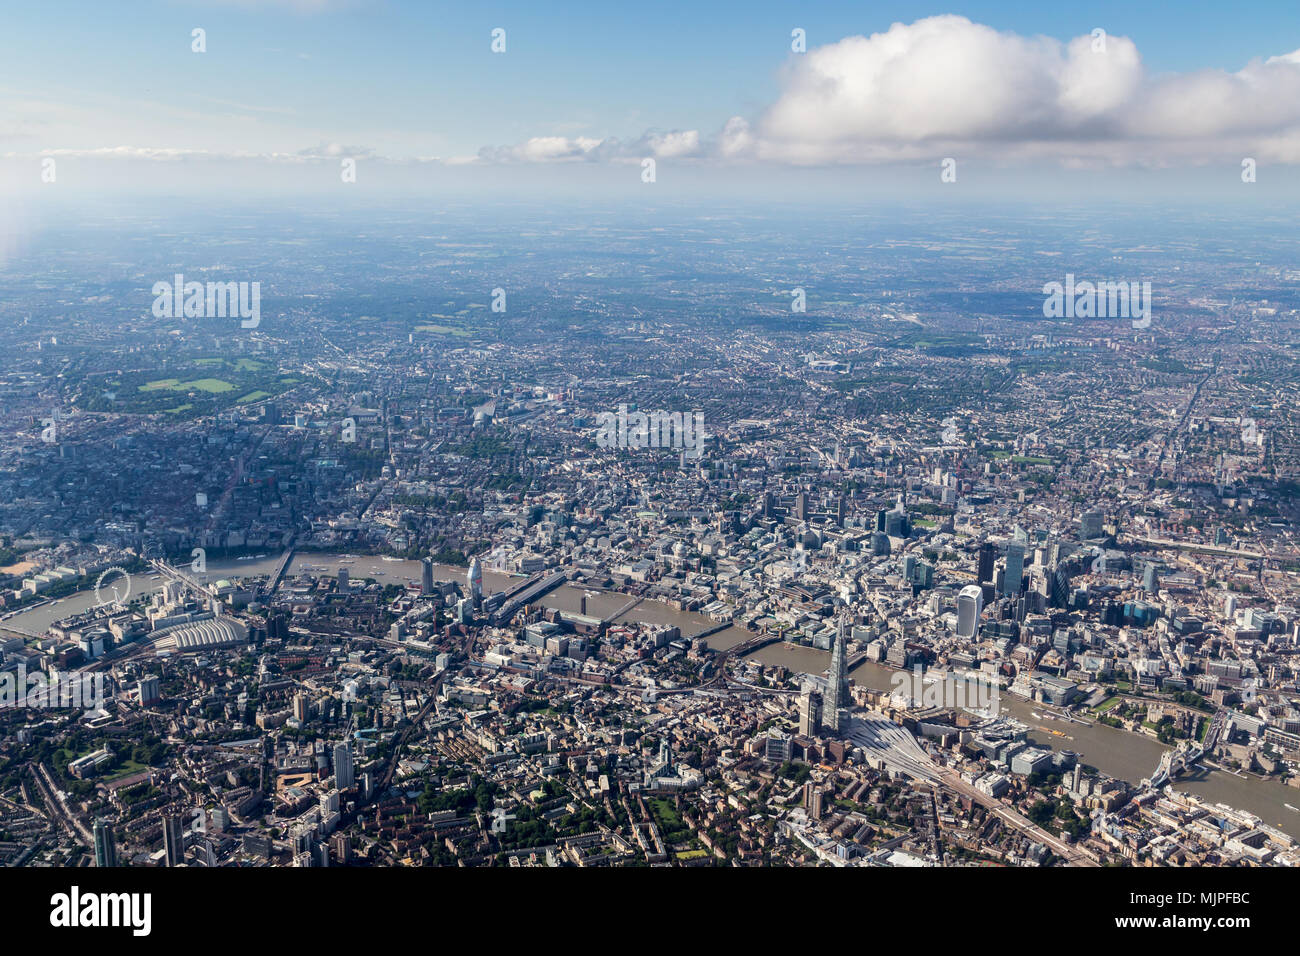 View of central London skyline looking North across the Thames Stock Photo